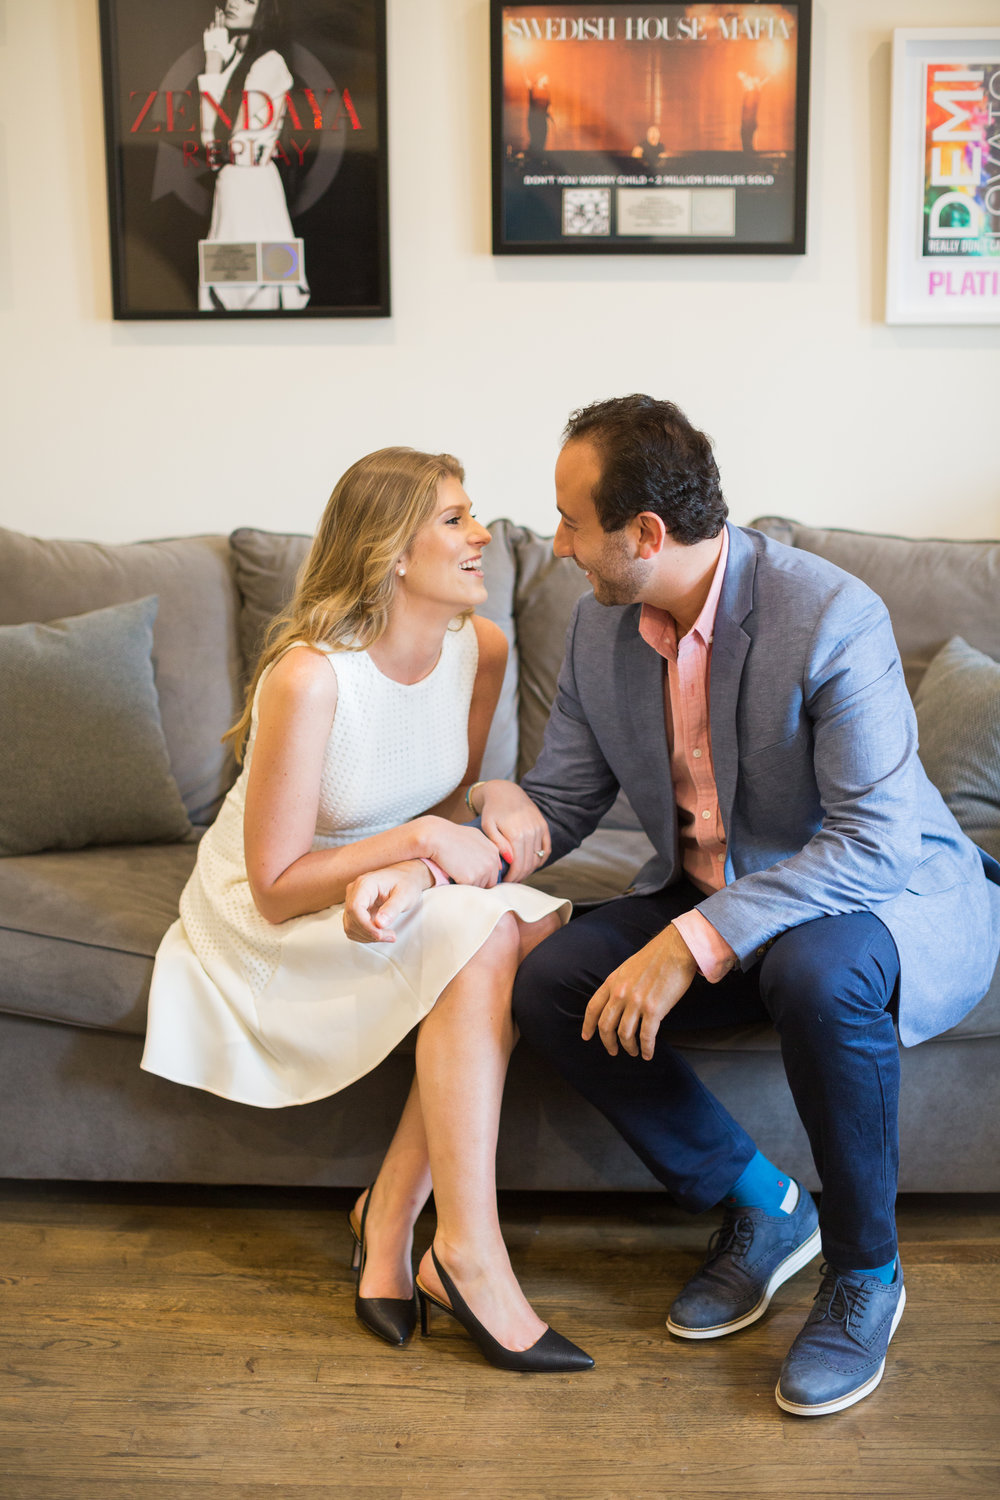 Melissa Kruse Photography - Courtney & JP Gramercy NYC Engagement Photos-64.jpg